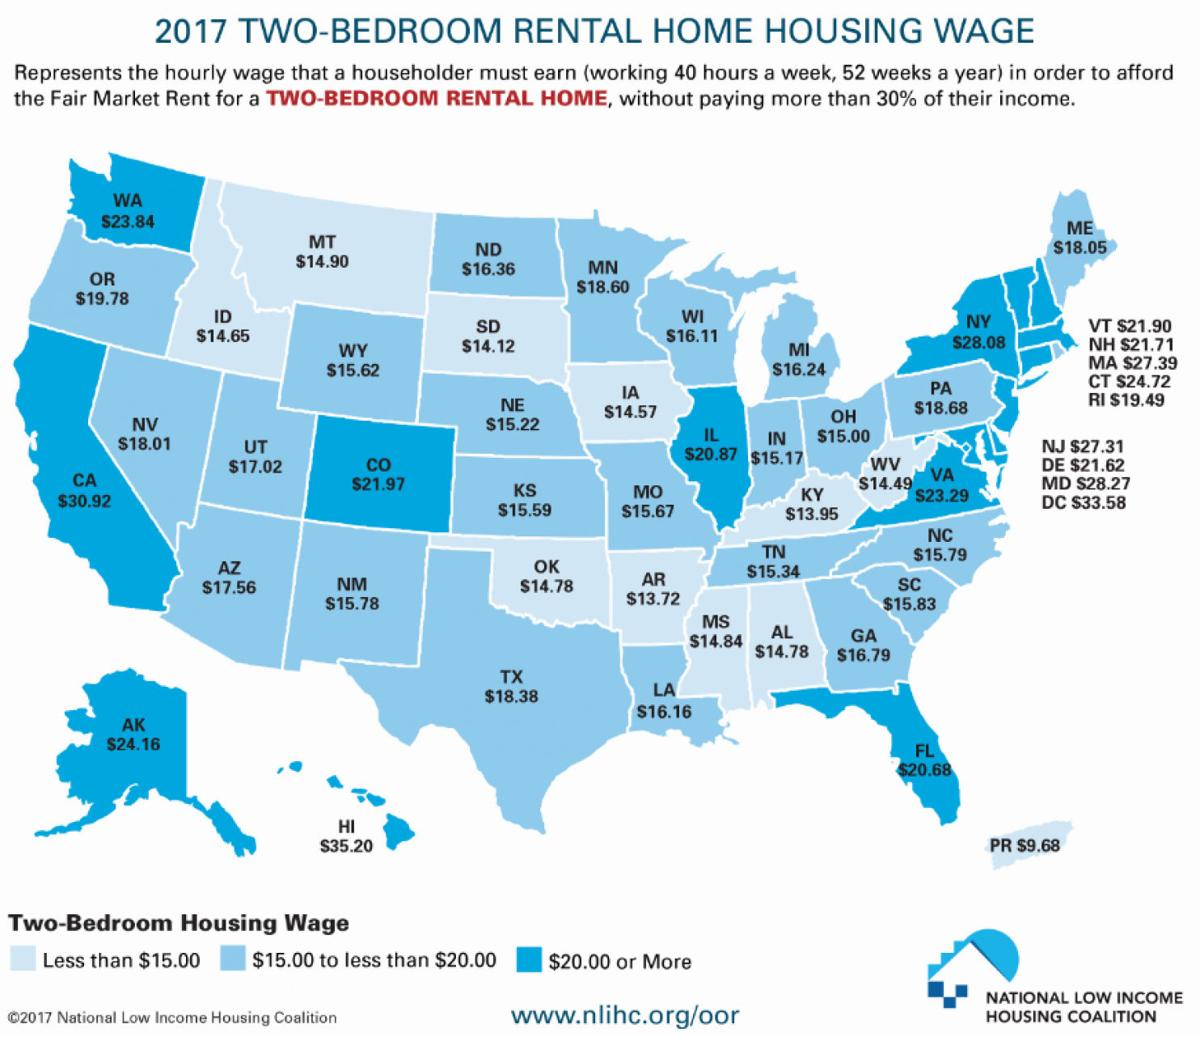 Nowhere in America can a full-time minimum wage worker afford to rent a two-bedroom apartment